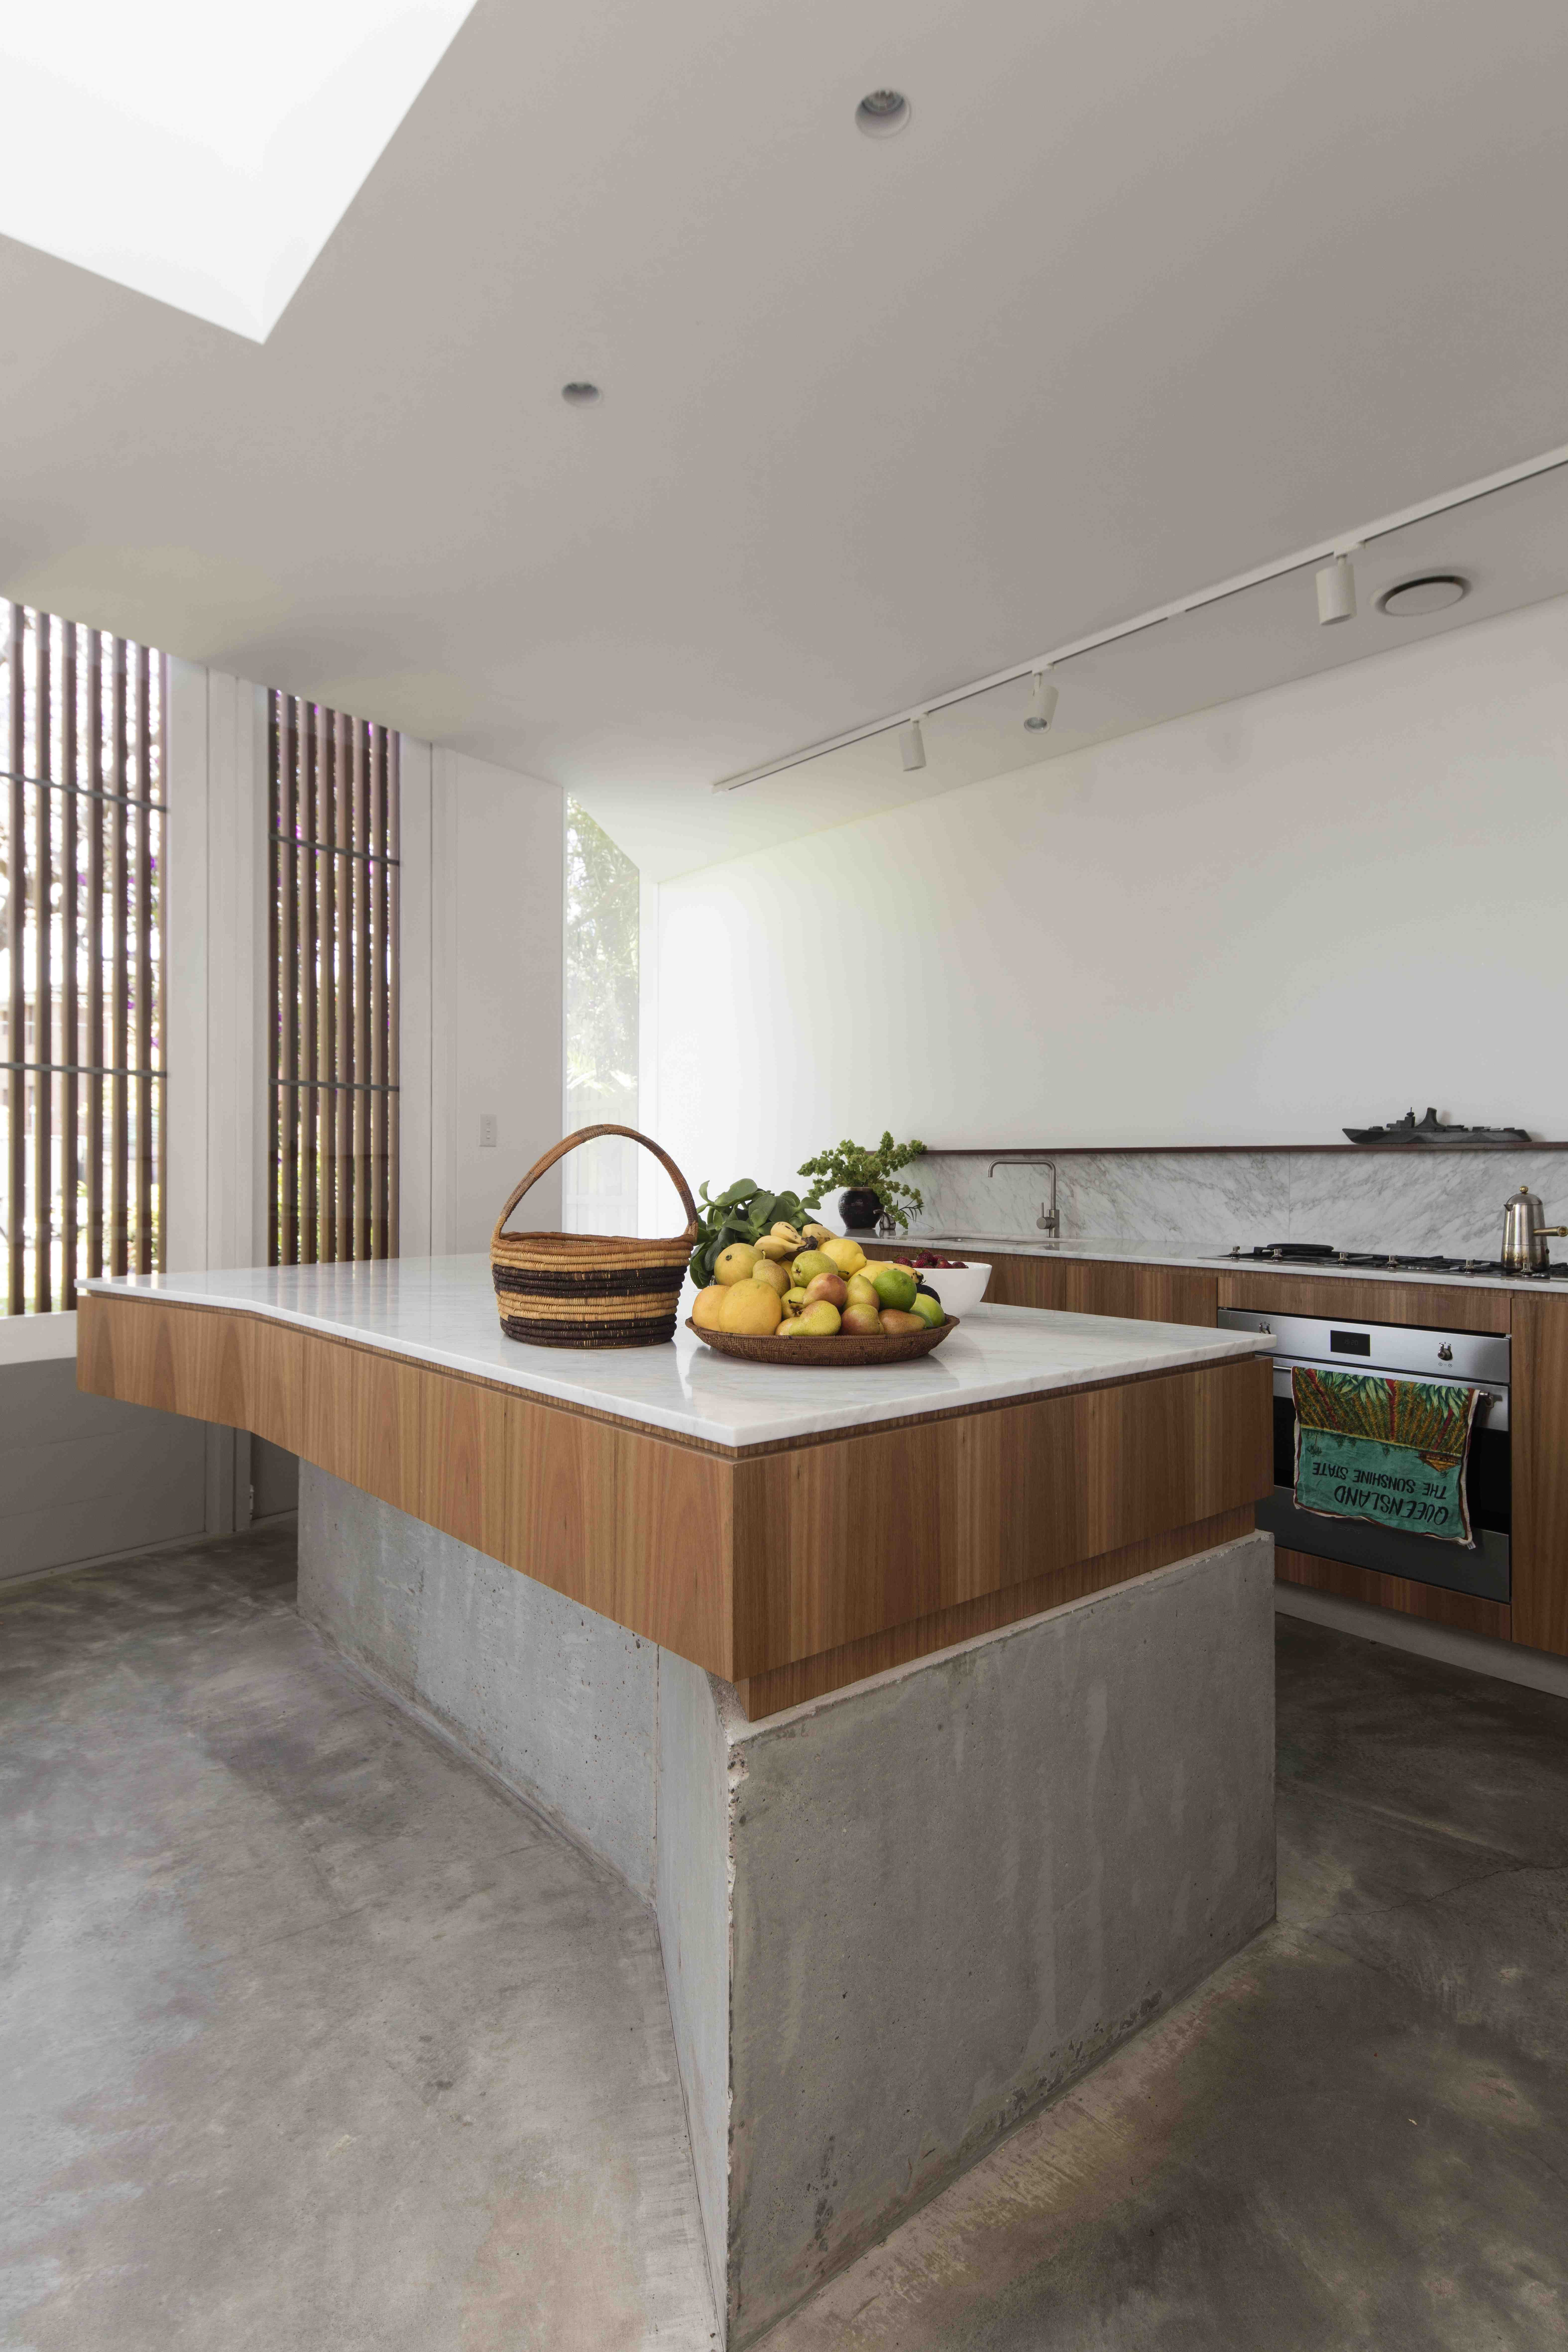 Jac By Panovscott Architects Is A Residential Transformation Project Located In The Inner West Sydney Suburb Of Dulwich Hill